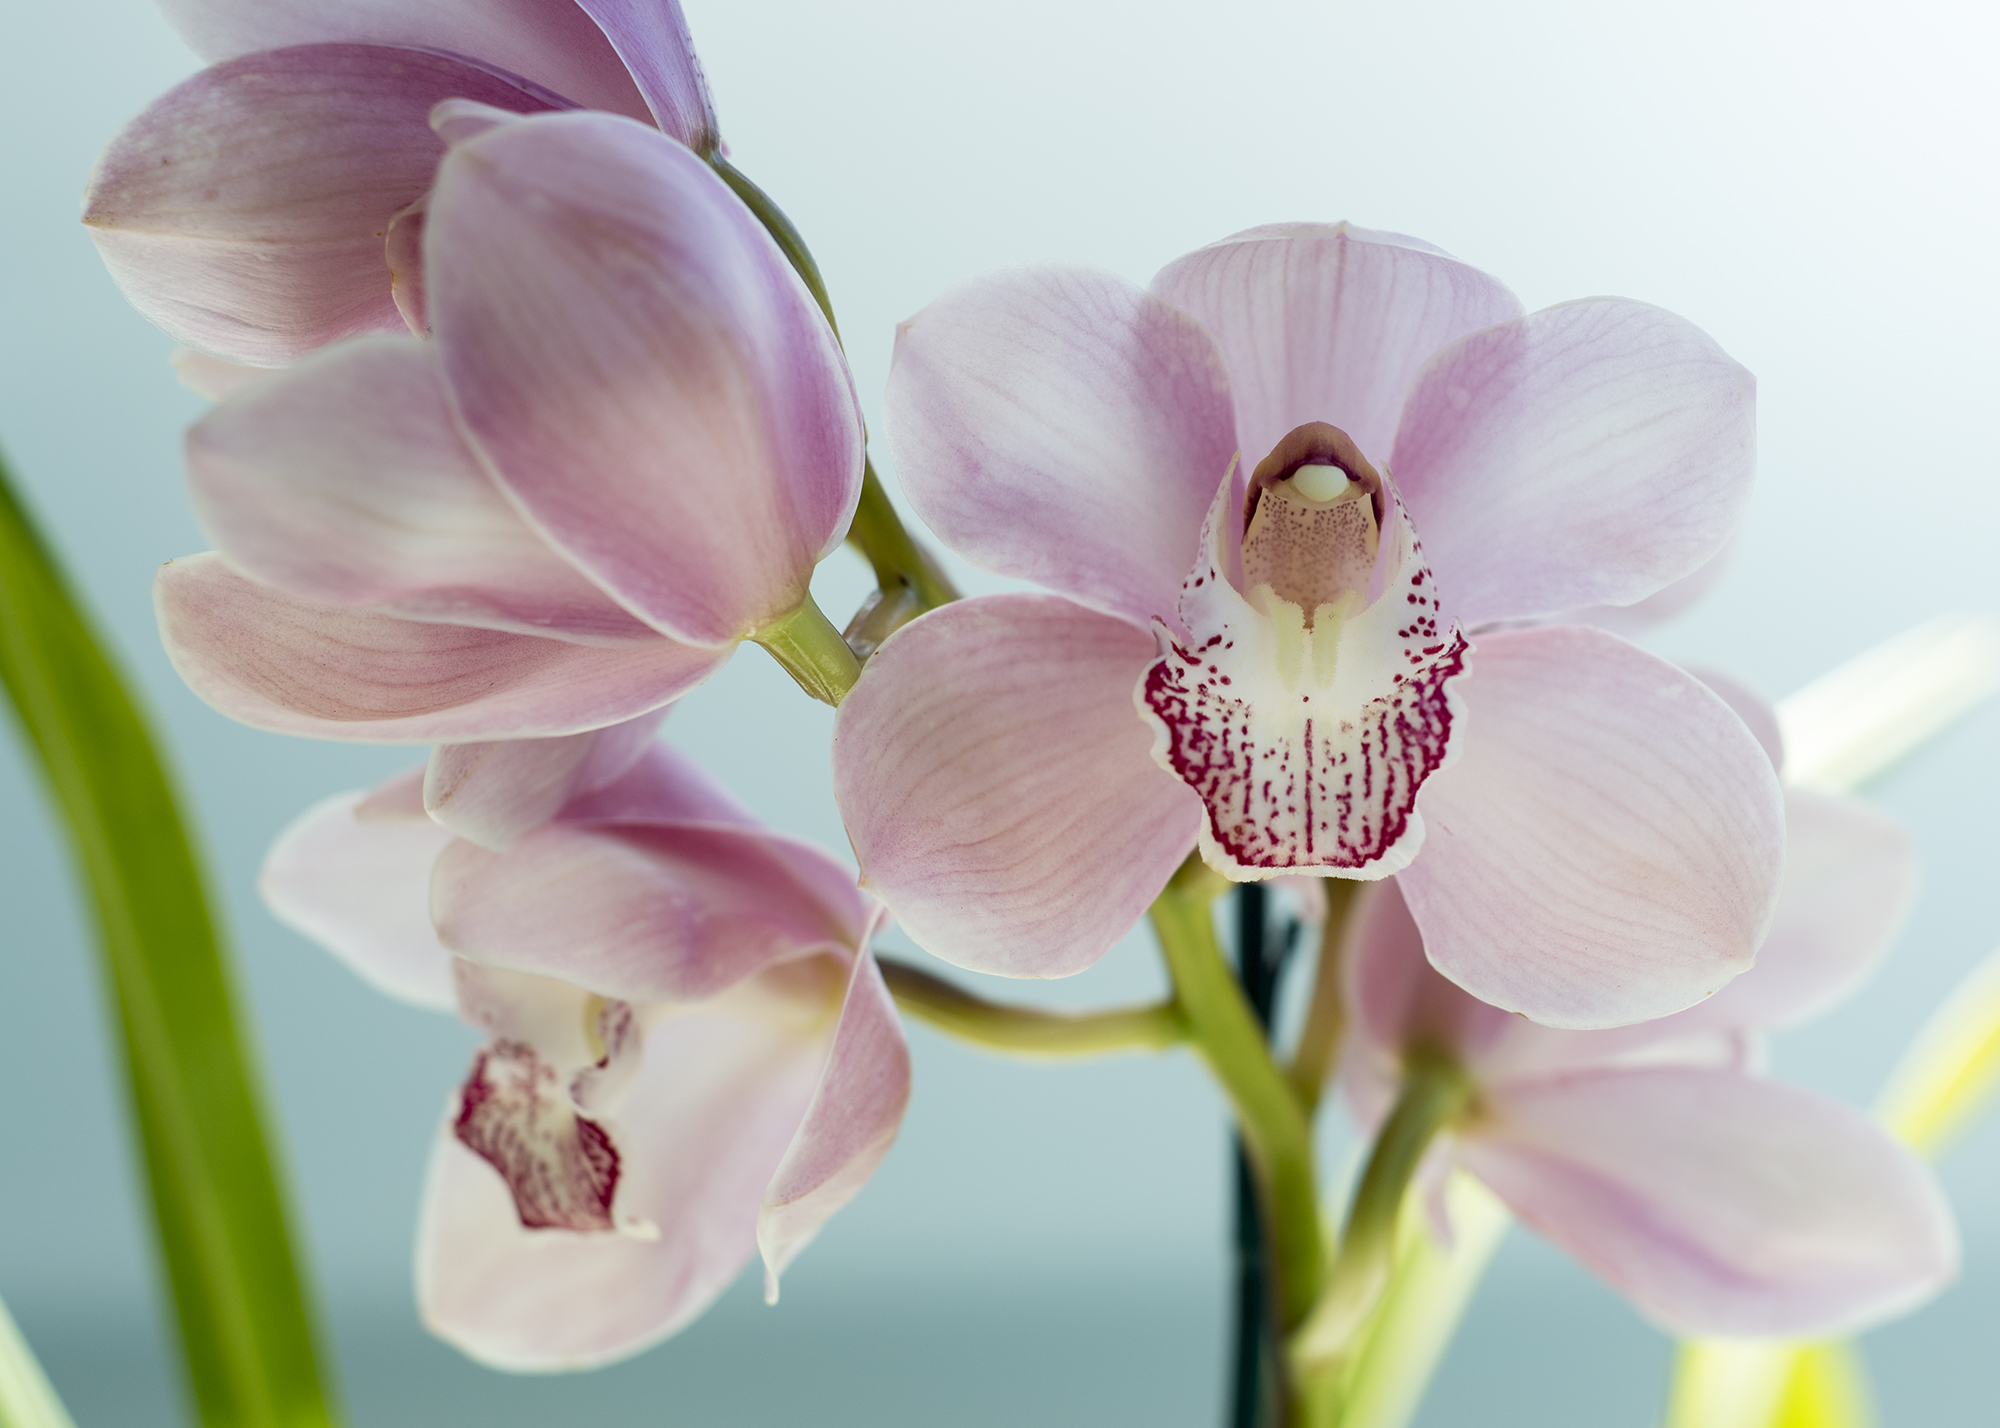 Delmarre Design product photography - Orchid2